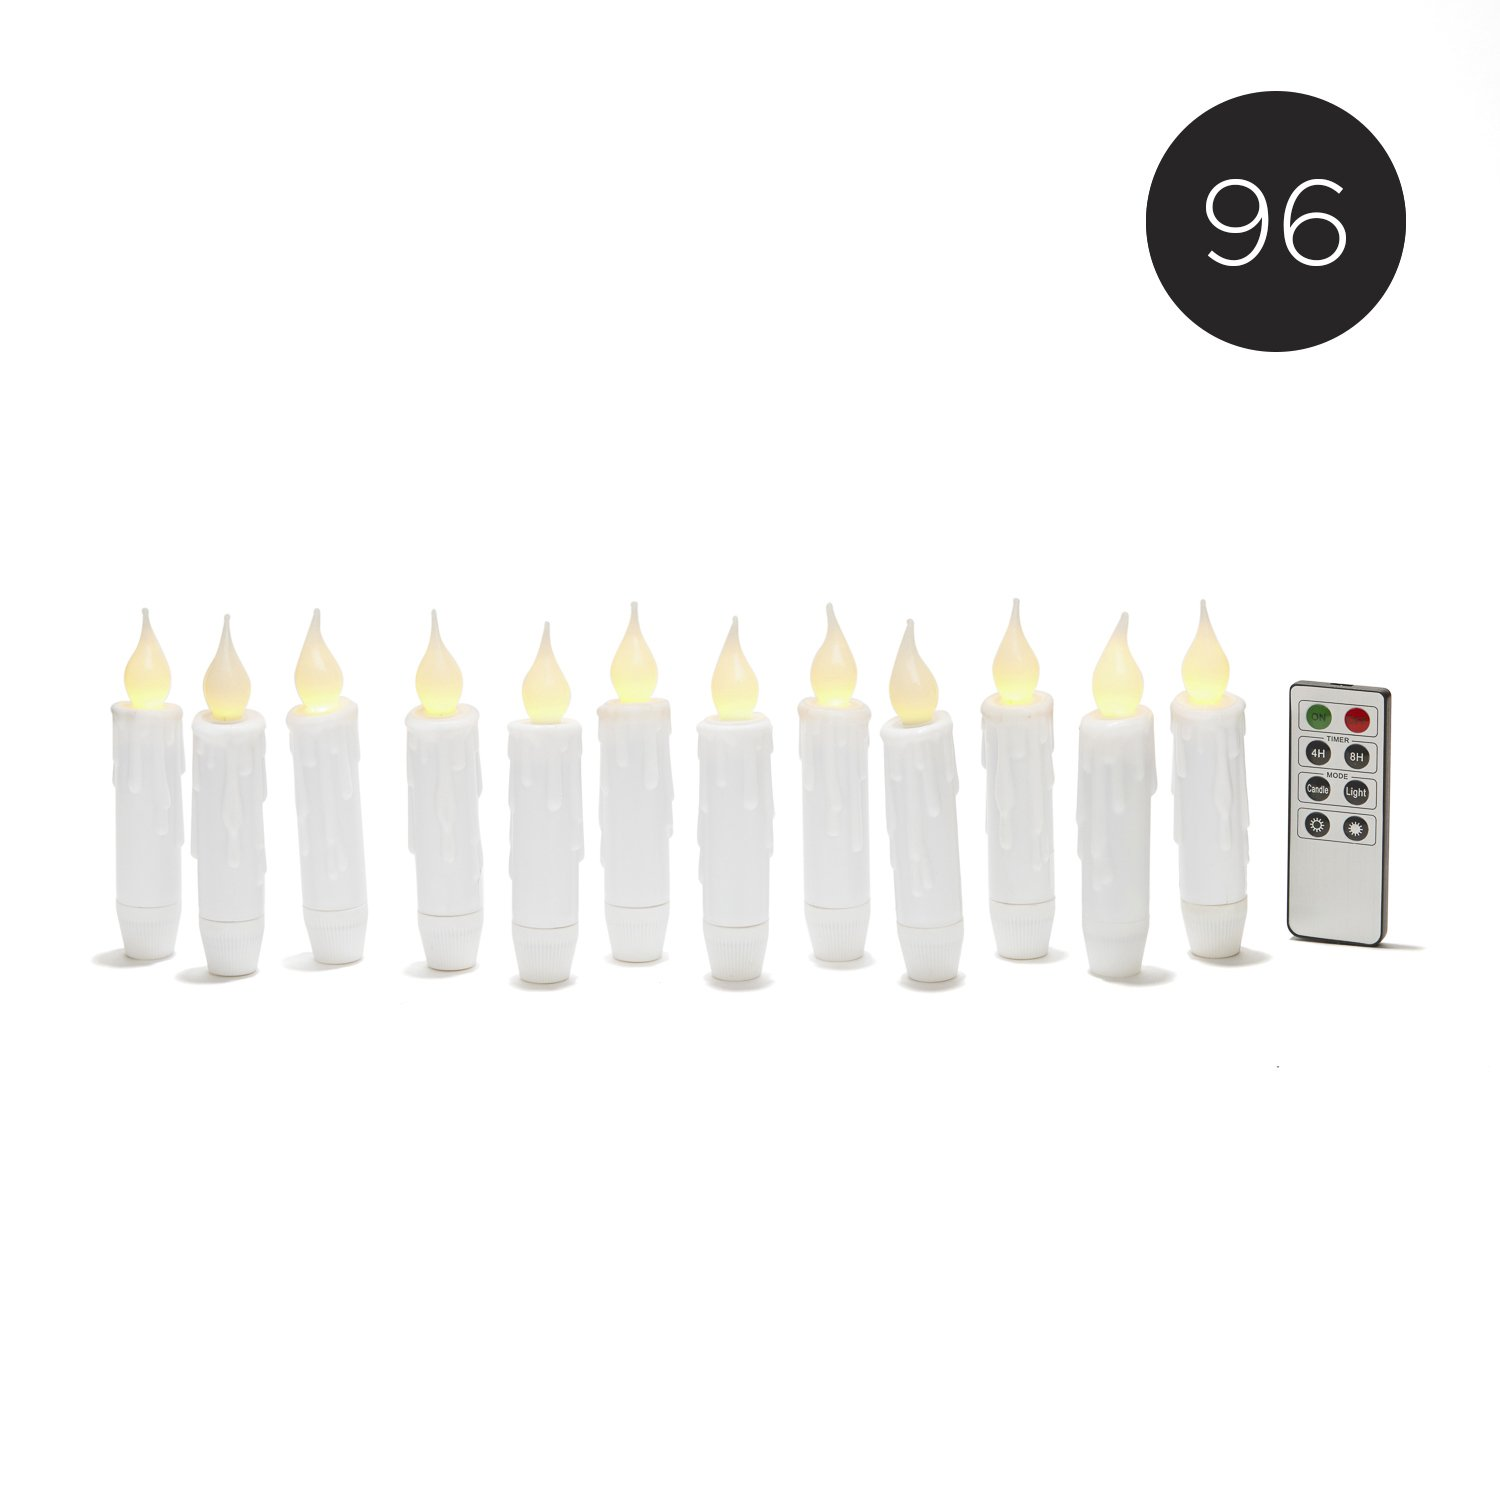 5'' Mini White Flameless Taper Candles with Remote | BULK VALUE SET | 96 Candles, Resin, Drip Detail, Indoor and Outdoor Use, Timer Option